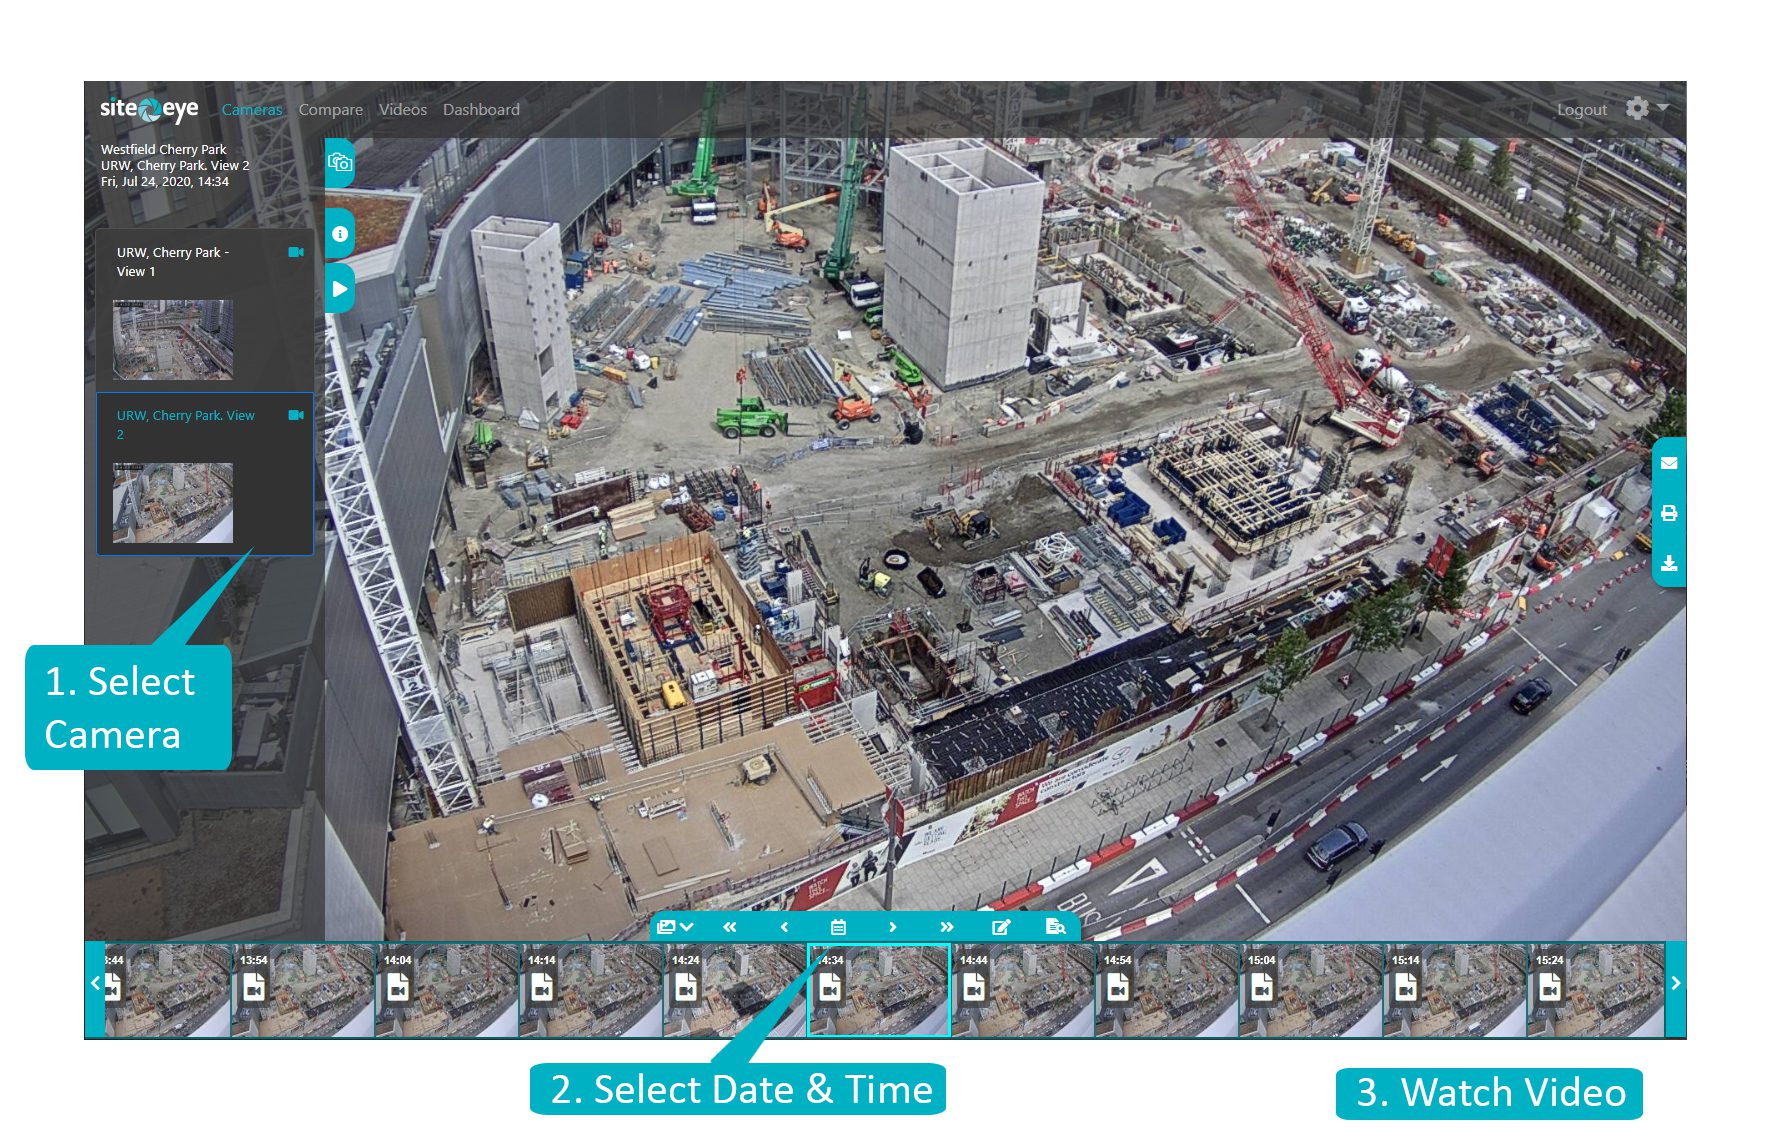 Image taken from the Site Eye Portal showing a Sitestream camera.